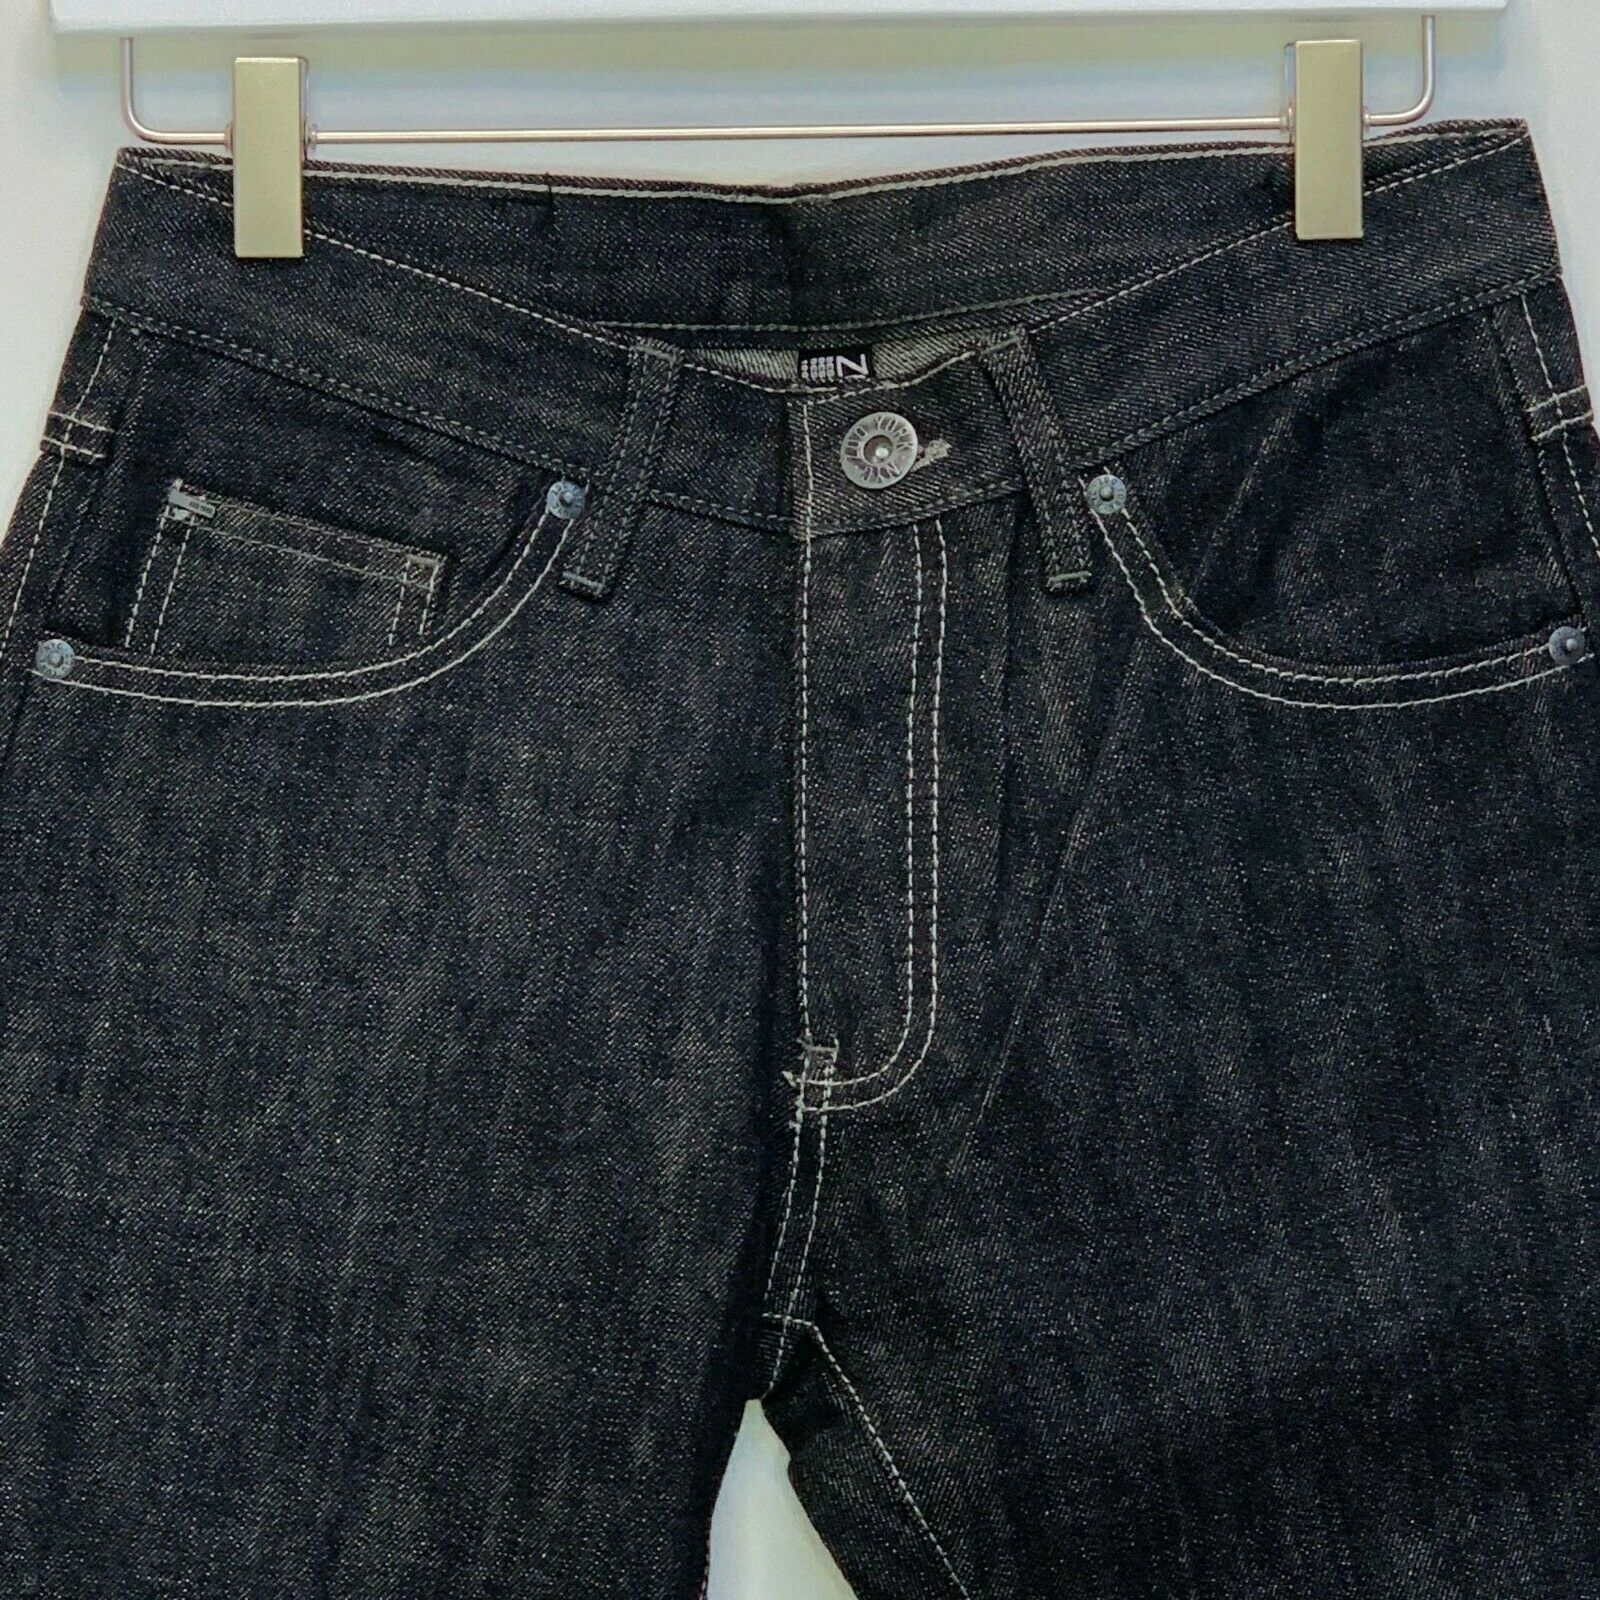 Primary image for Zoo York Boys Solid Black Jeans Size 14 NWOT